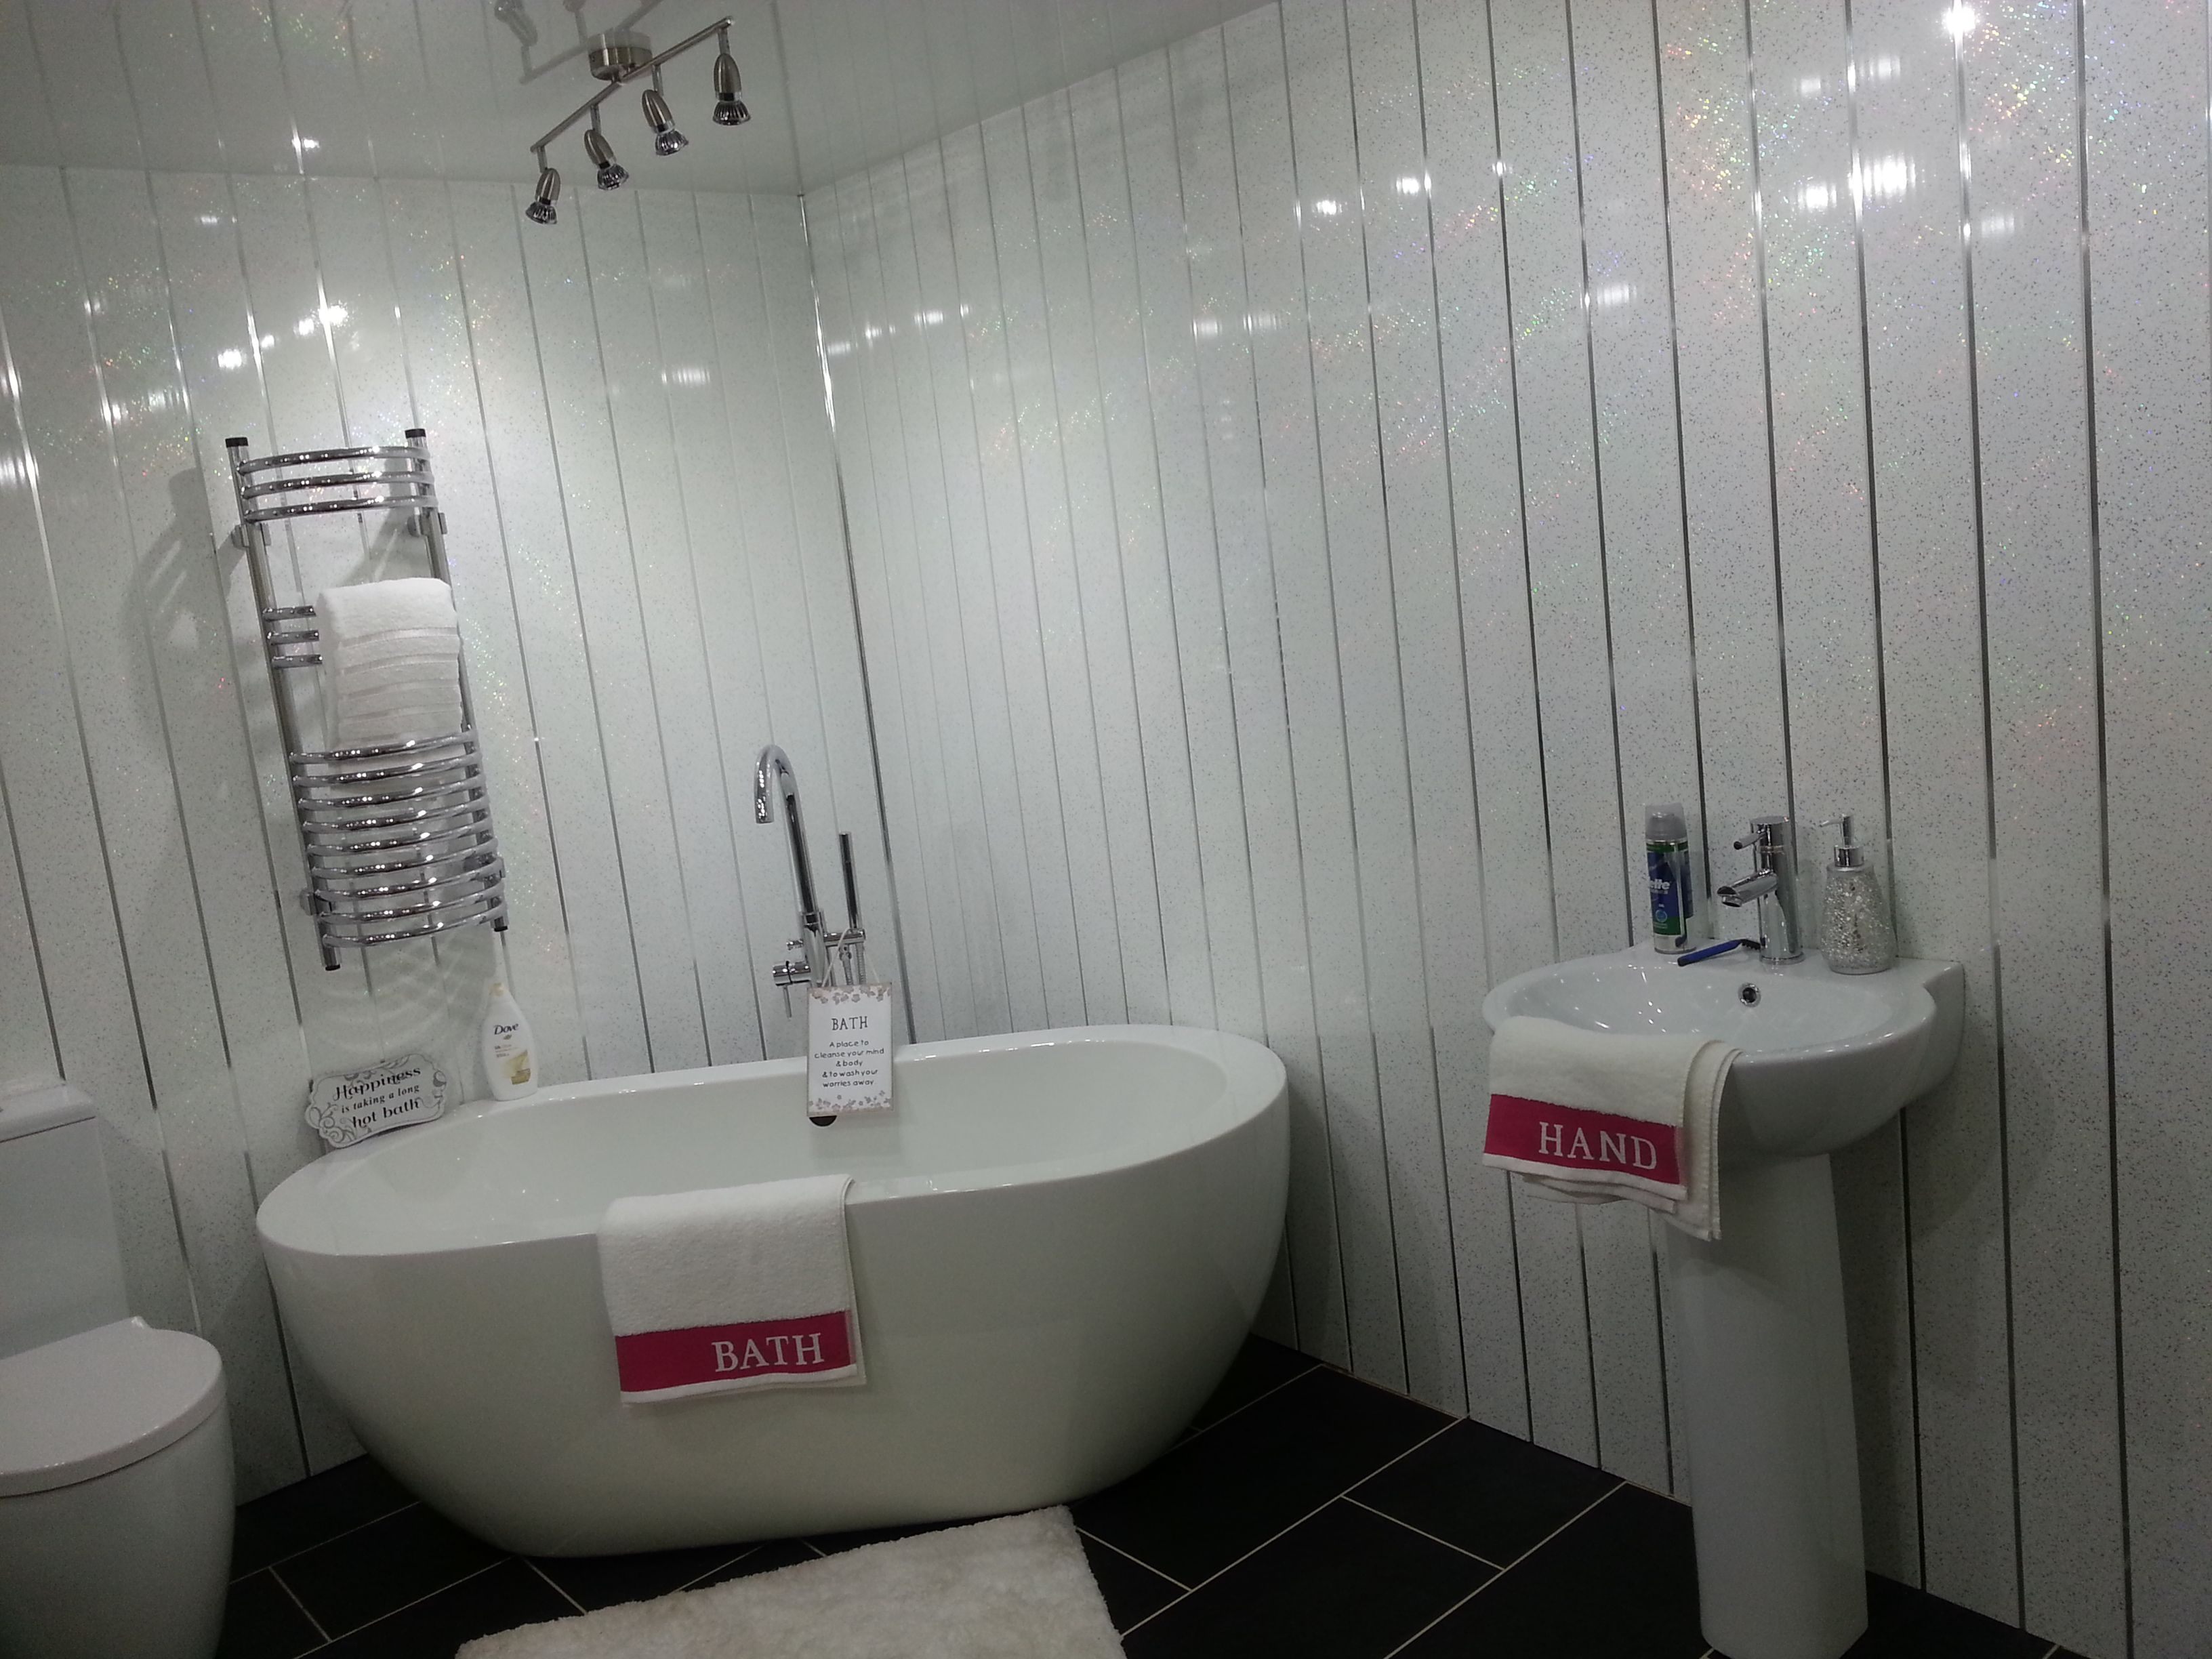 Uk wide delivery on a huge selection of decorative pvc wall panels for all areas of the home including bathrooms showers and kitchens